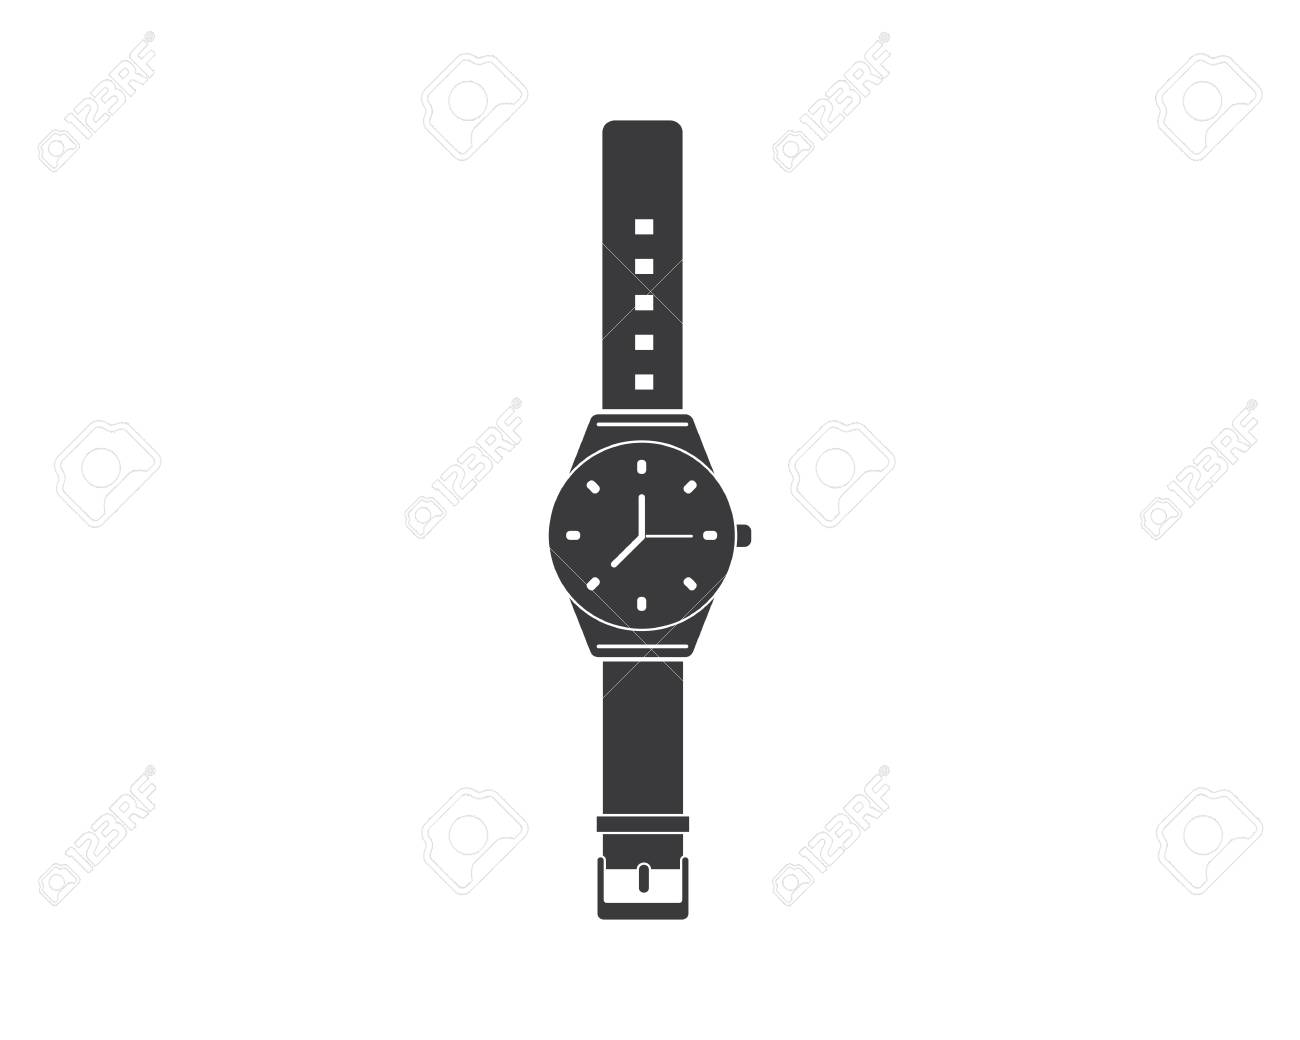 Wristwatch Icon Vector Template Design Template Royalty Free Cliparts Vectors And Stock Illustration Image 120072528